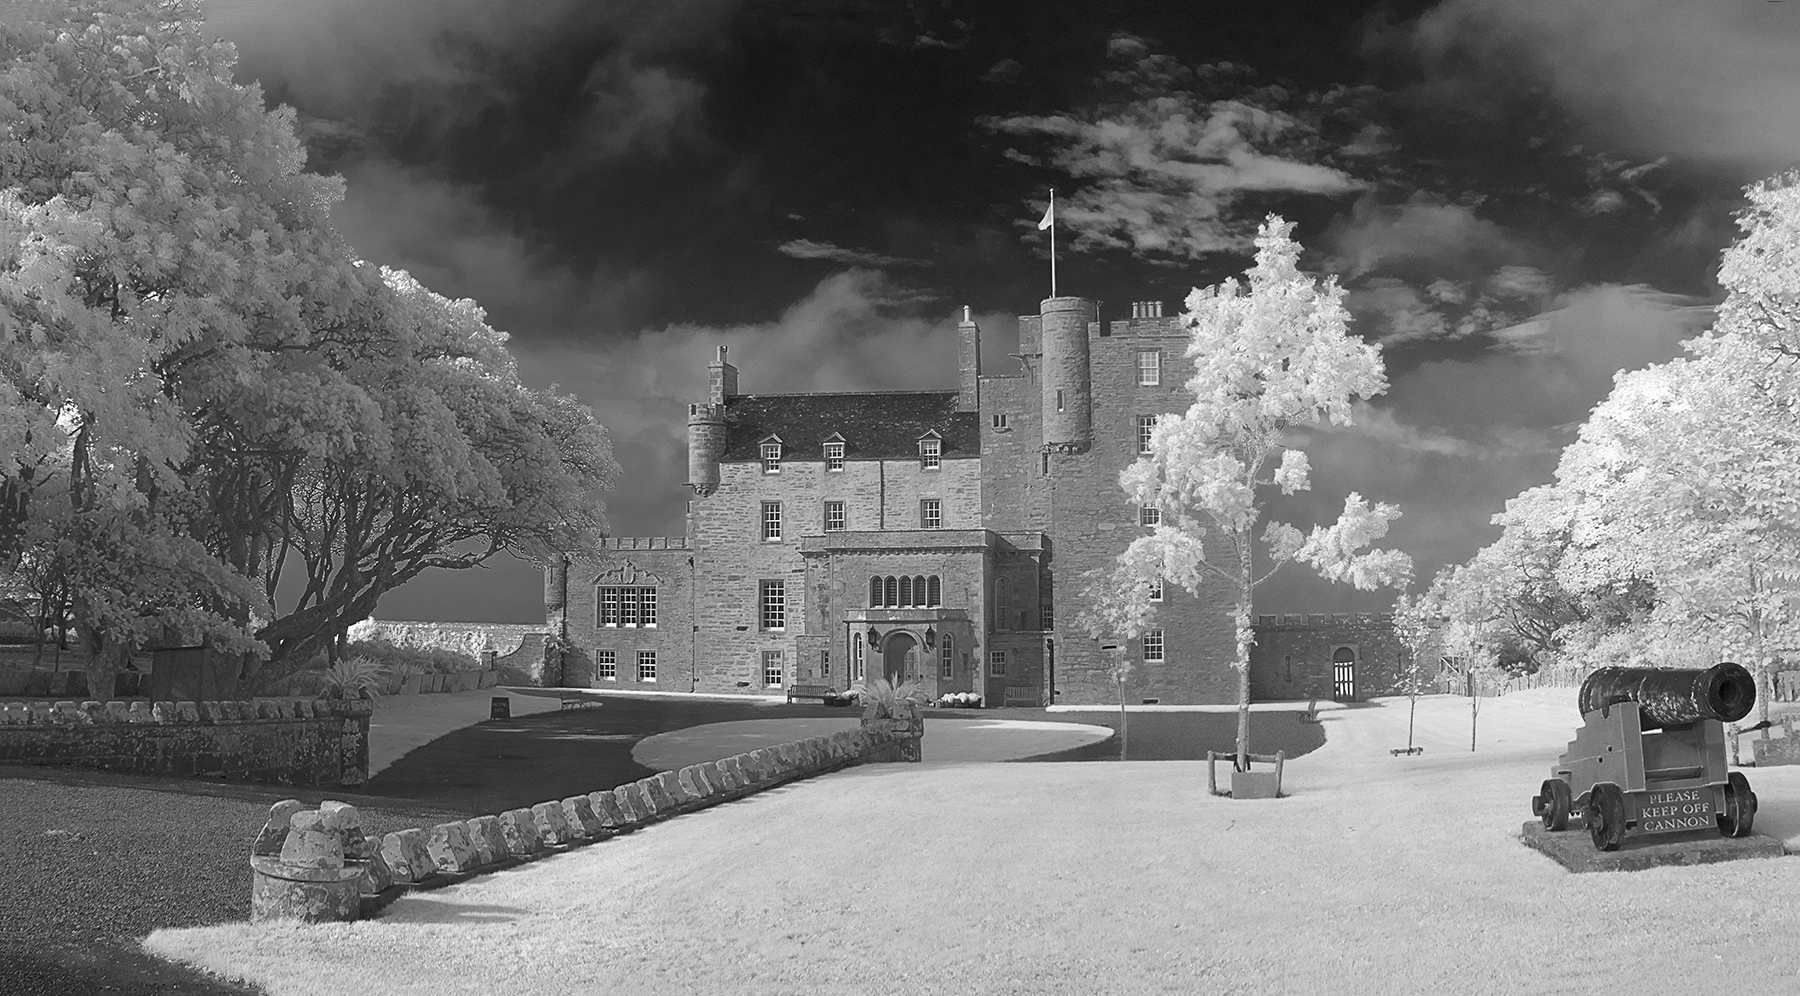 Castle of Mey 3641 - 3643